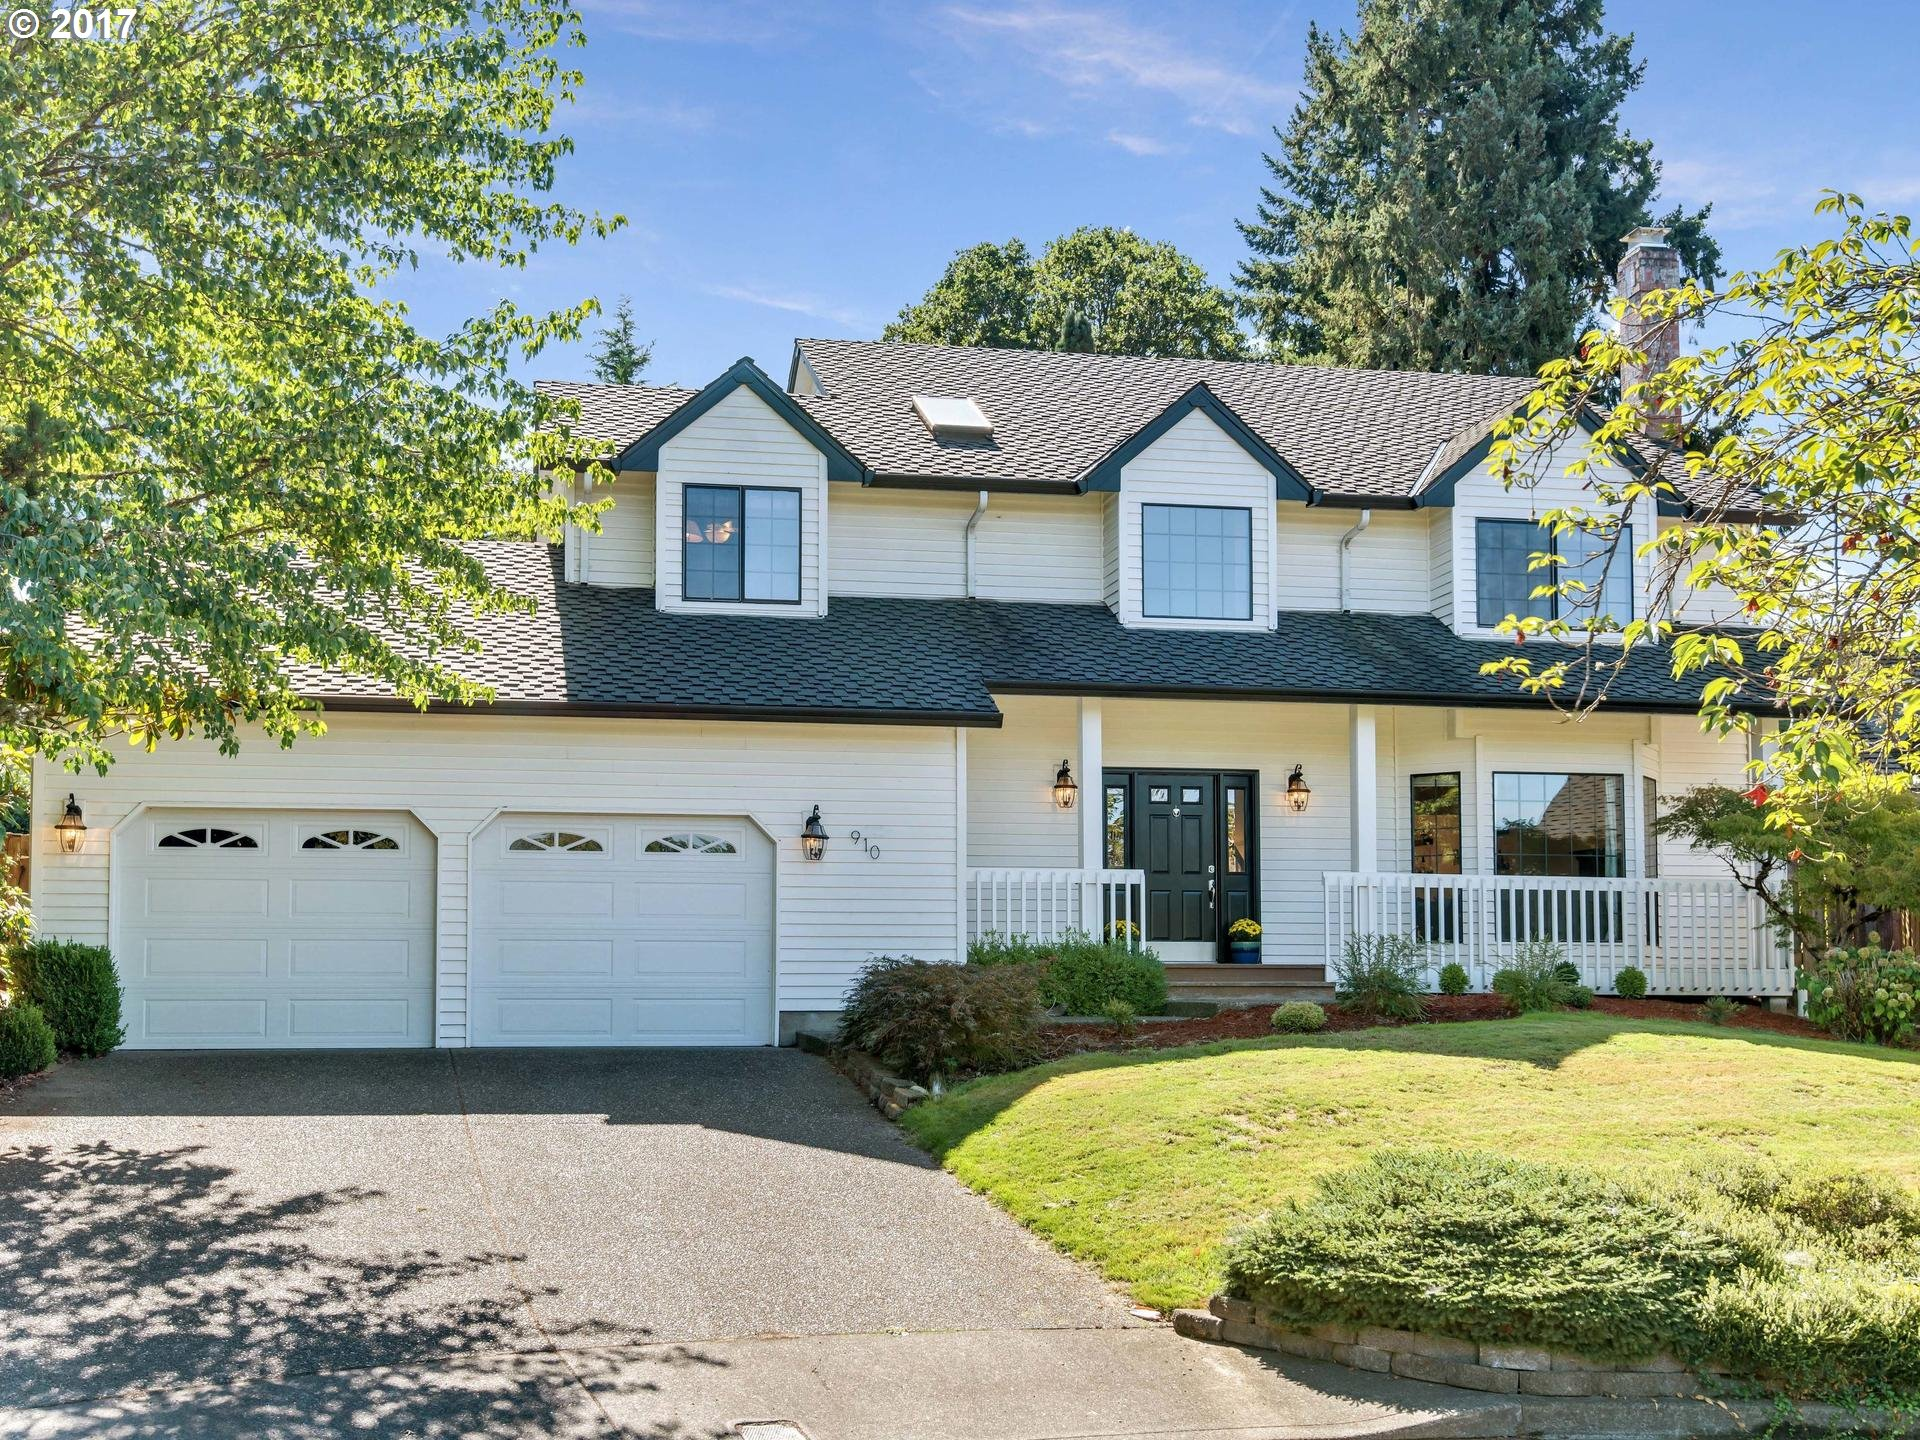 Open 9/23 12-2pm. Charming & spacious home w/ all the Waterhouse Community amenities. Tons of natural light thanks to many windows & skylights. Formal living room w/ fireplace & formal dining room. Open kitchen w/ granite, SS appliances, breakfast nook. Family room w/ gas fireplace & vaulted ceilings. Huge master suite w/ WI-closet & dbl sinks. Tons of storage throughout. Large, quiet, fenced backyard w/ play structure & patio